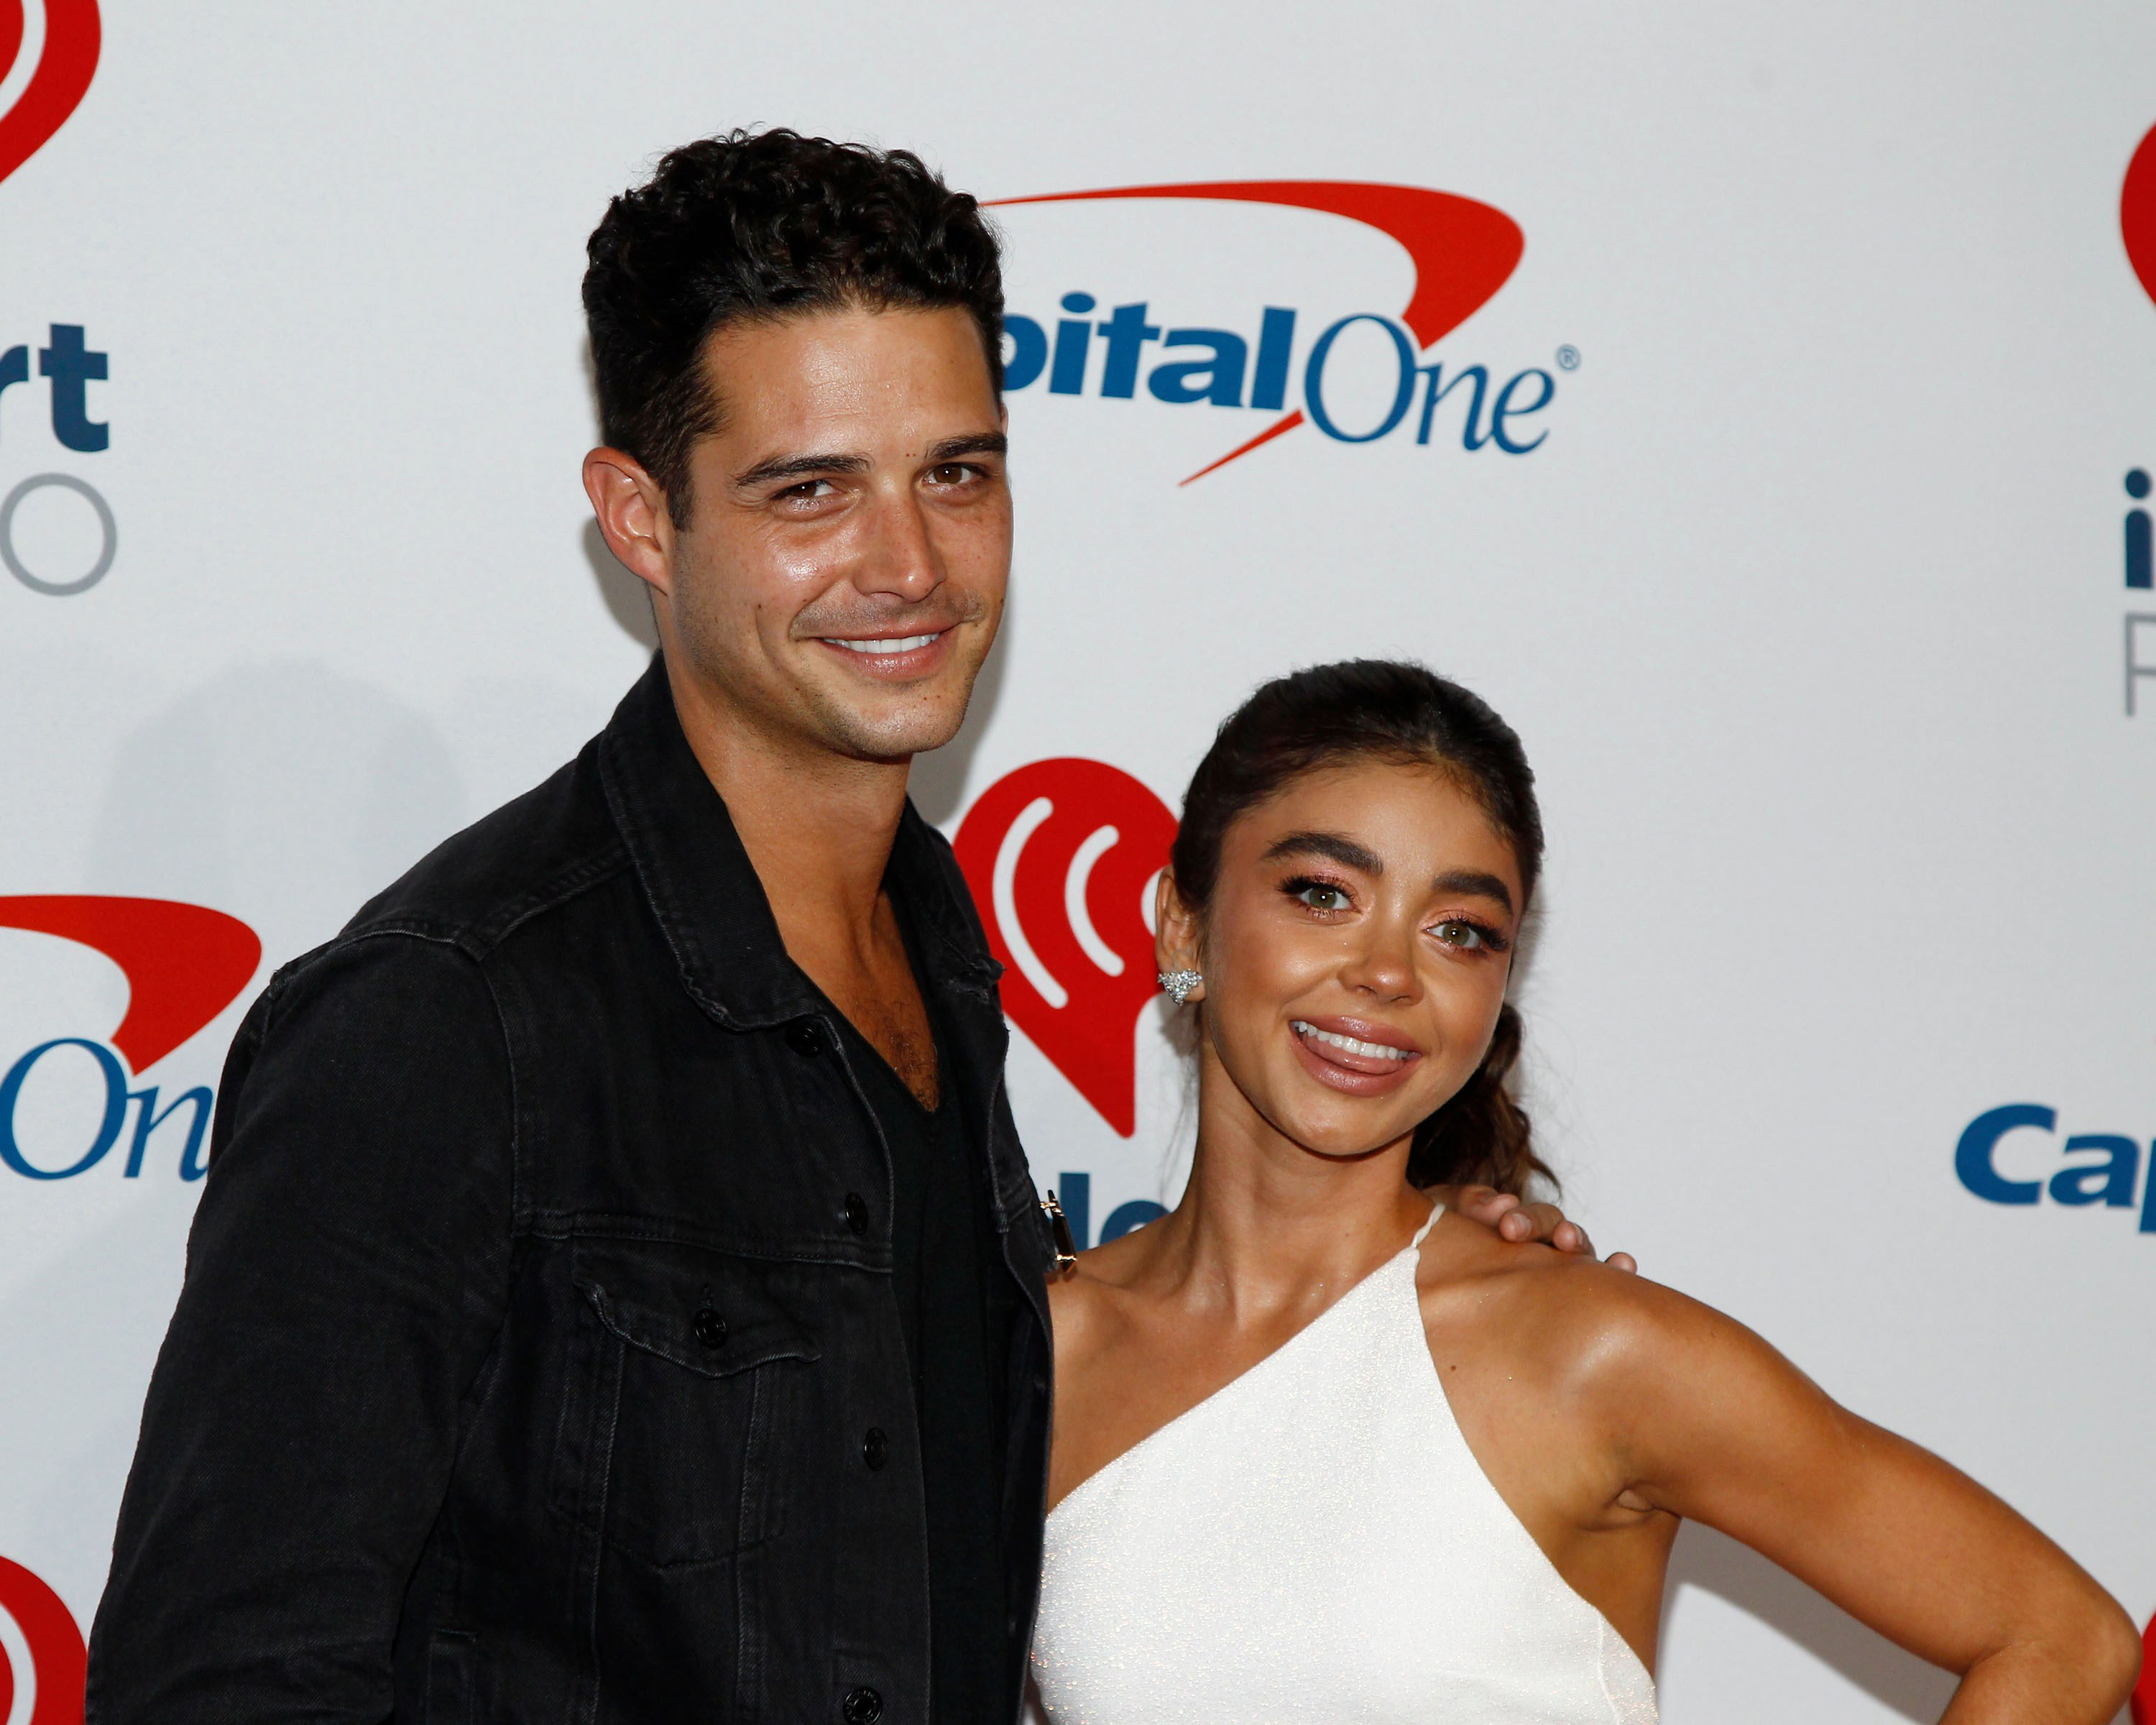 Sarah Hyland And Wells Adams Mark What Would Have Been Their Wedding Day With Cute Photos